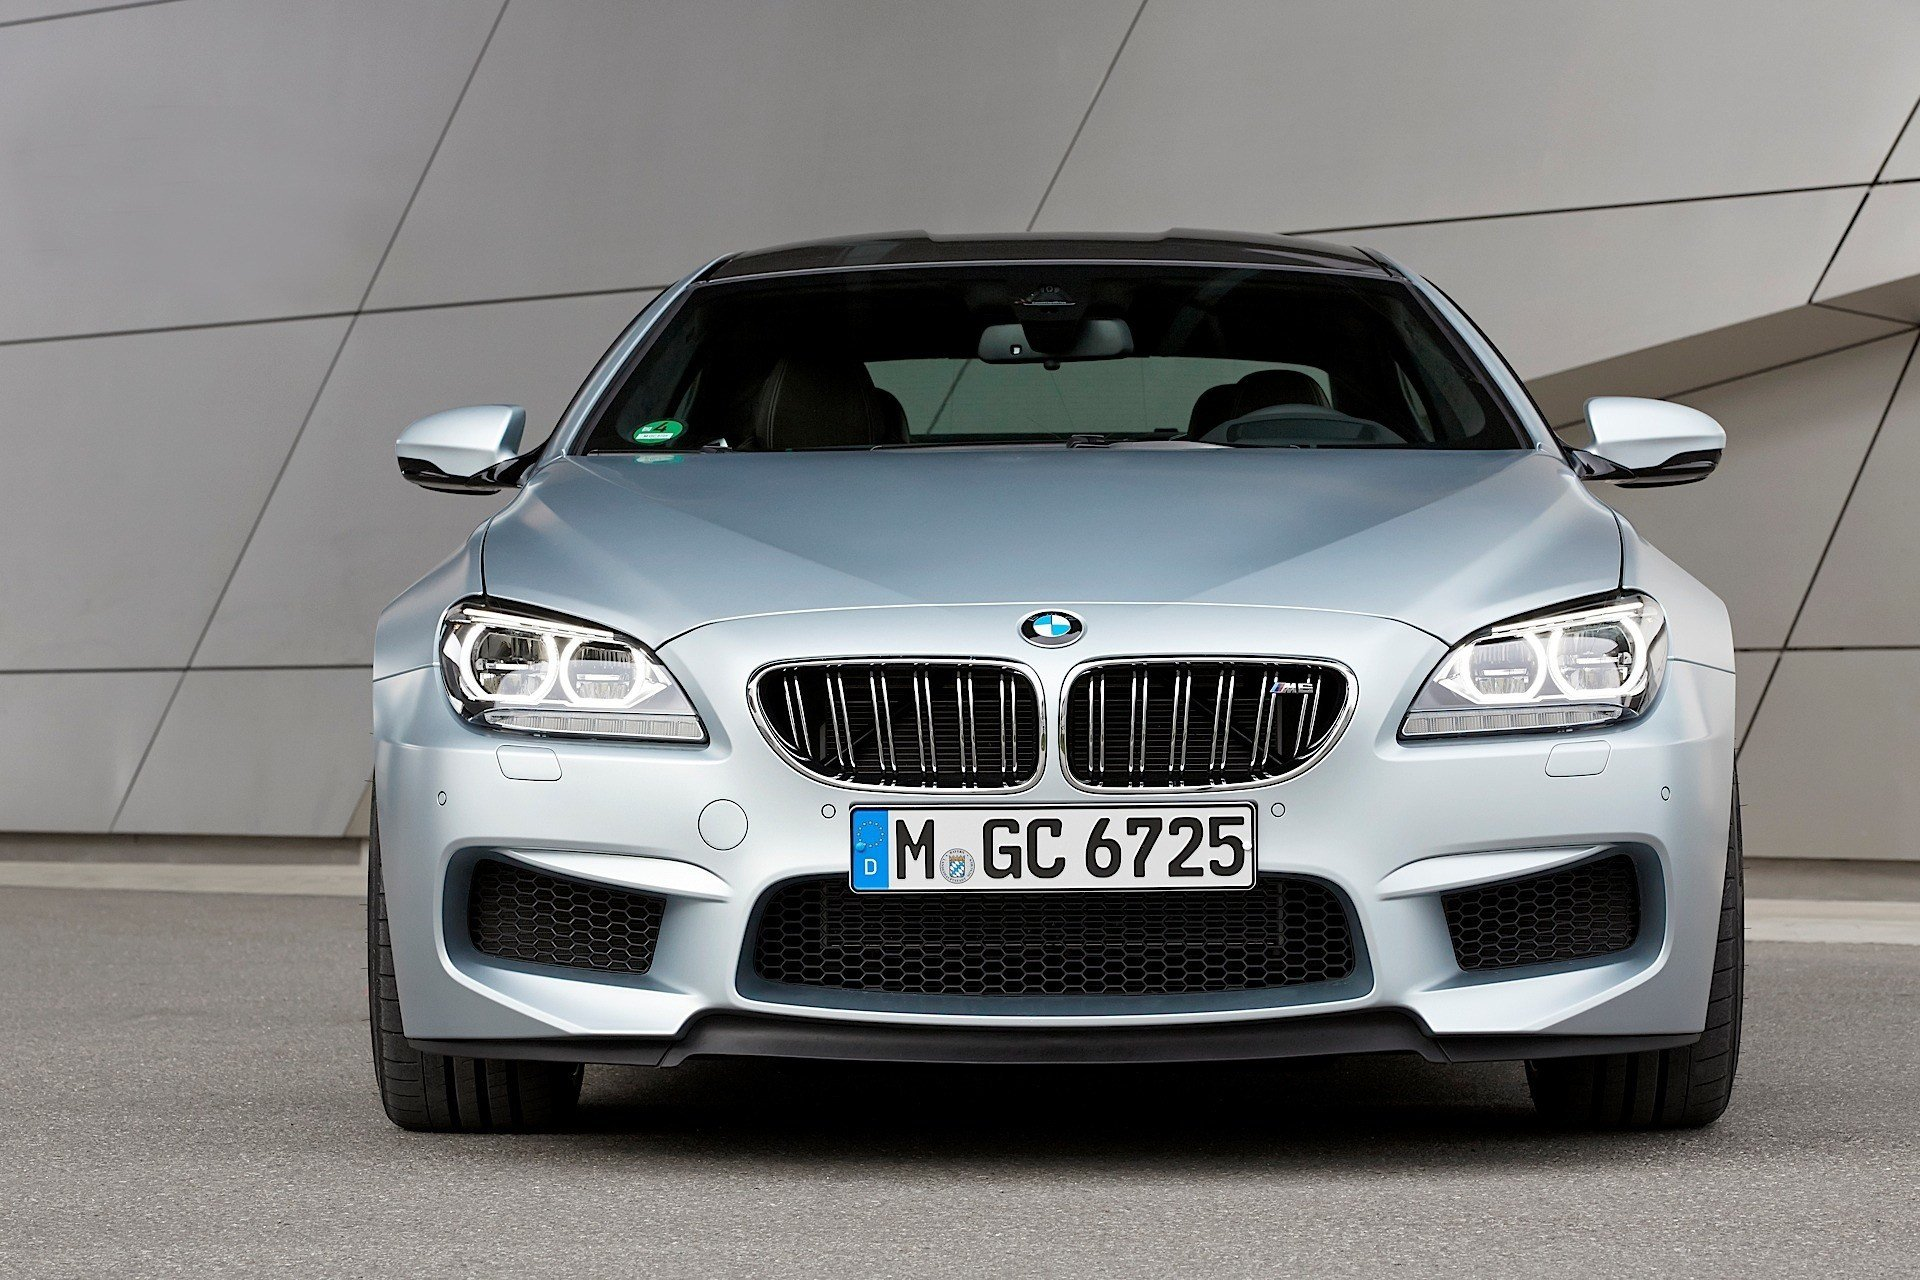 Latest Bmw Releases New Photos Of The M6 Gran Coupe Autoevolution Free Download